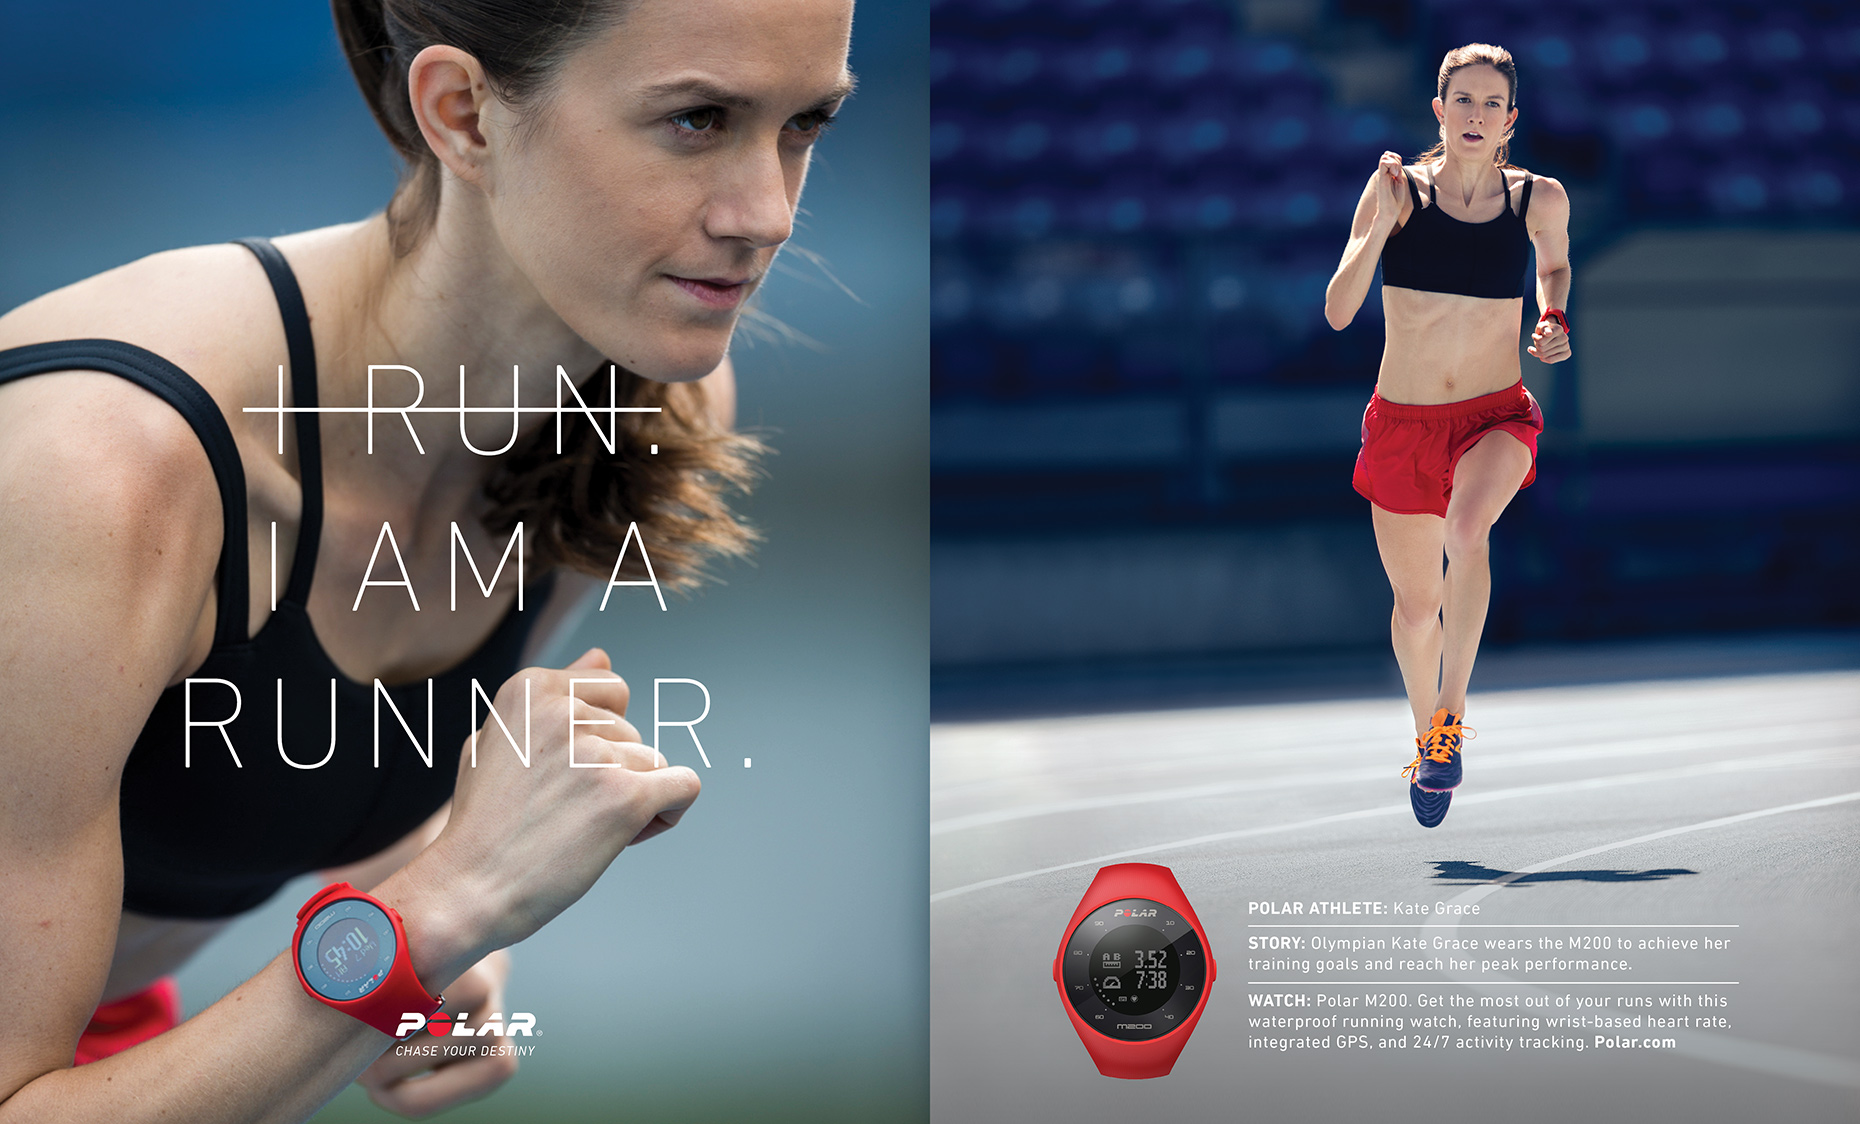 Philadelphia Photographer STEVE BOYLE - Polar Heartrate Monitors, Fitness Trackers and GPS Watches - Kate Grace - Running